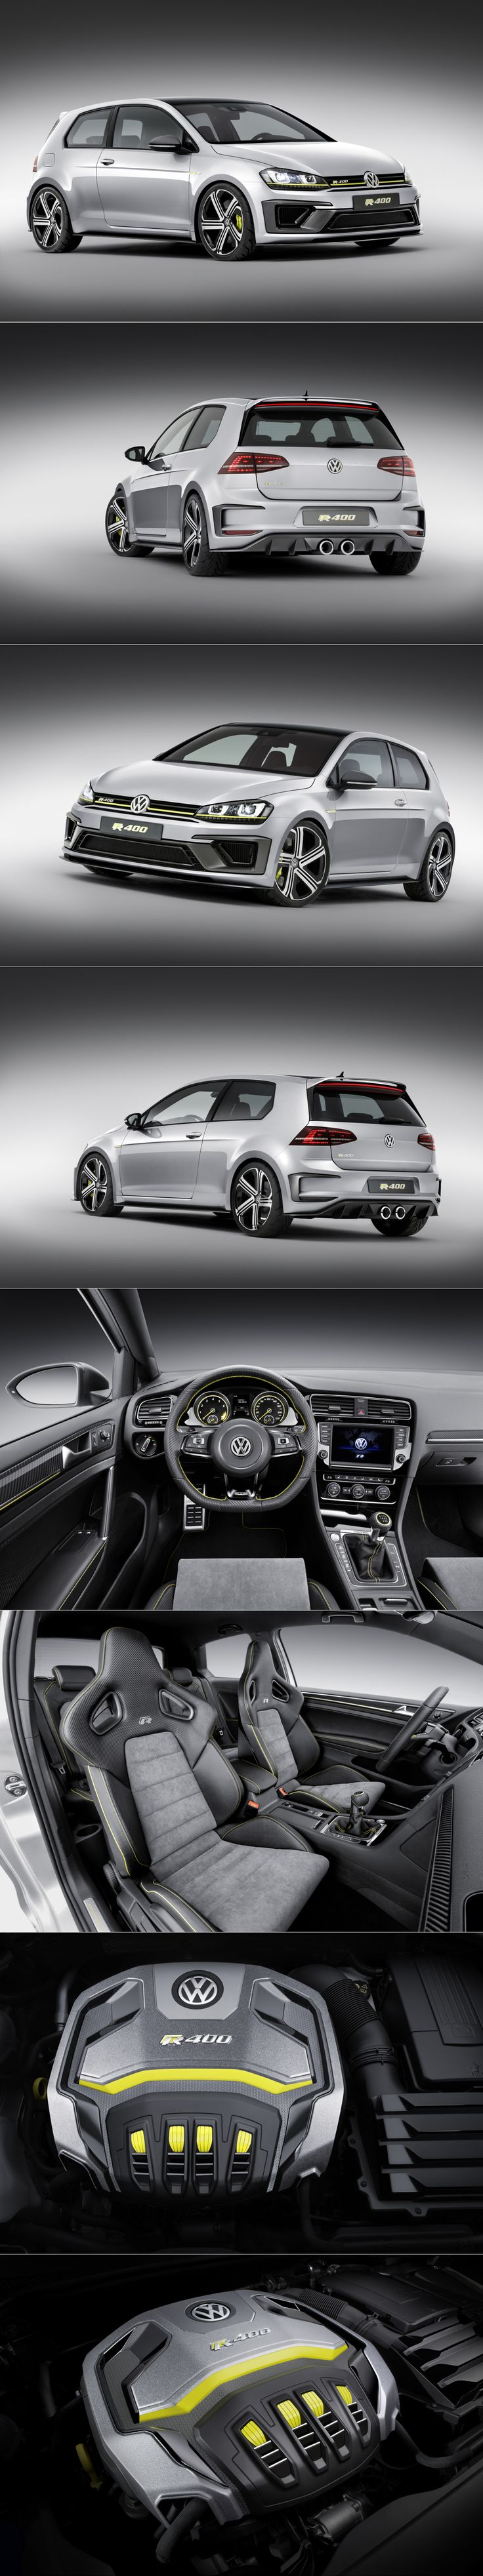 The VW 400 PS GOLF R 400 SPORTS CAR CONCEPT (RUMORED FOR PRODUCTION)